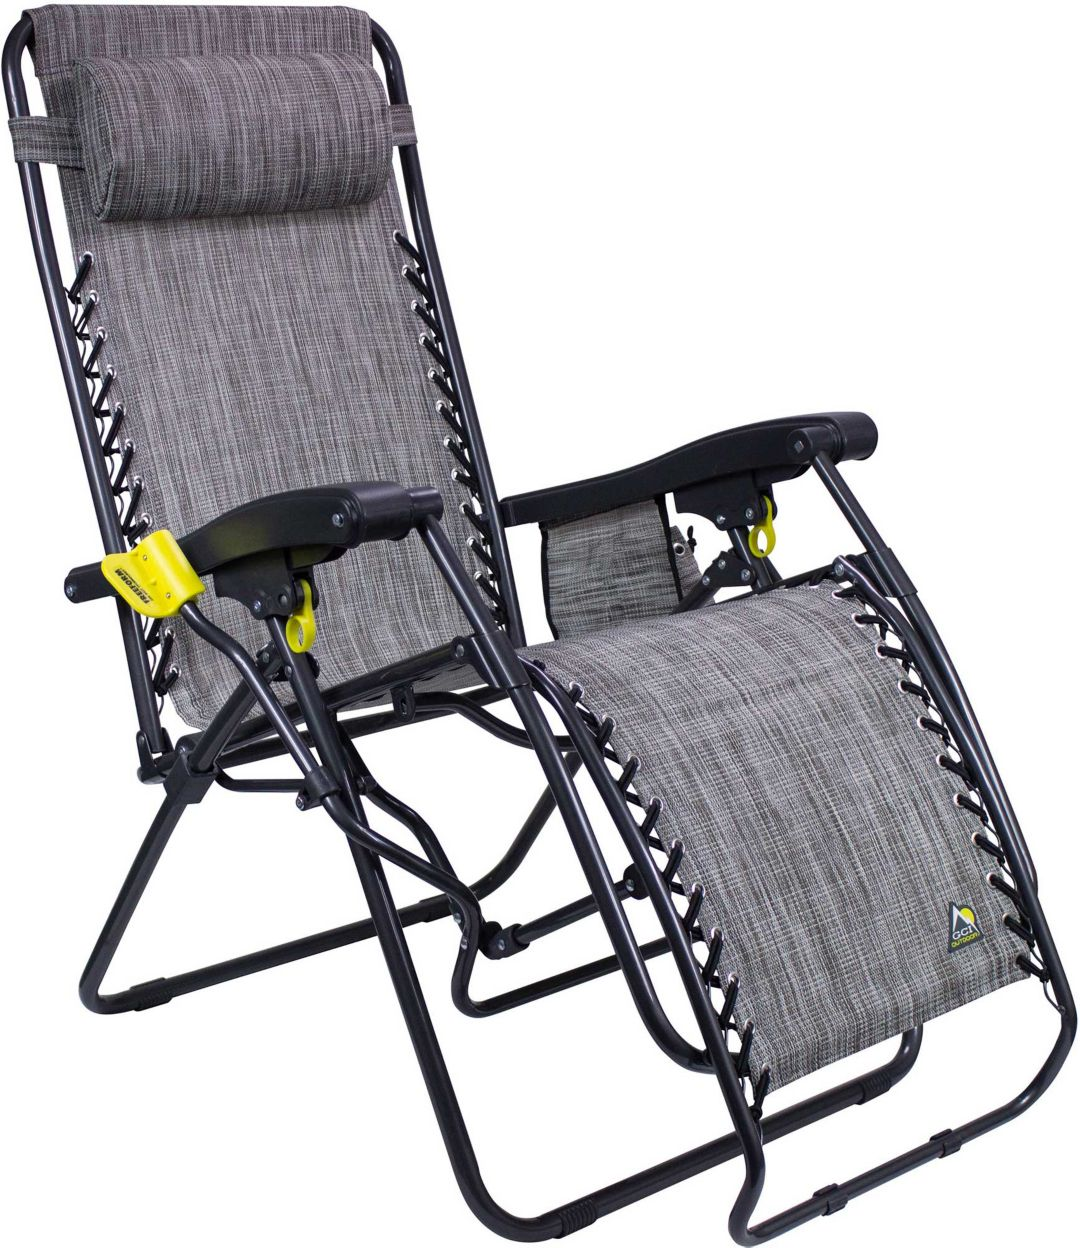 Awesome Walmart Zero Gravity Chair The Arts Ocoug Best Dining Table And Chair Ideas Images Ocougorg